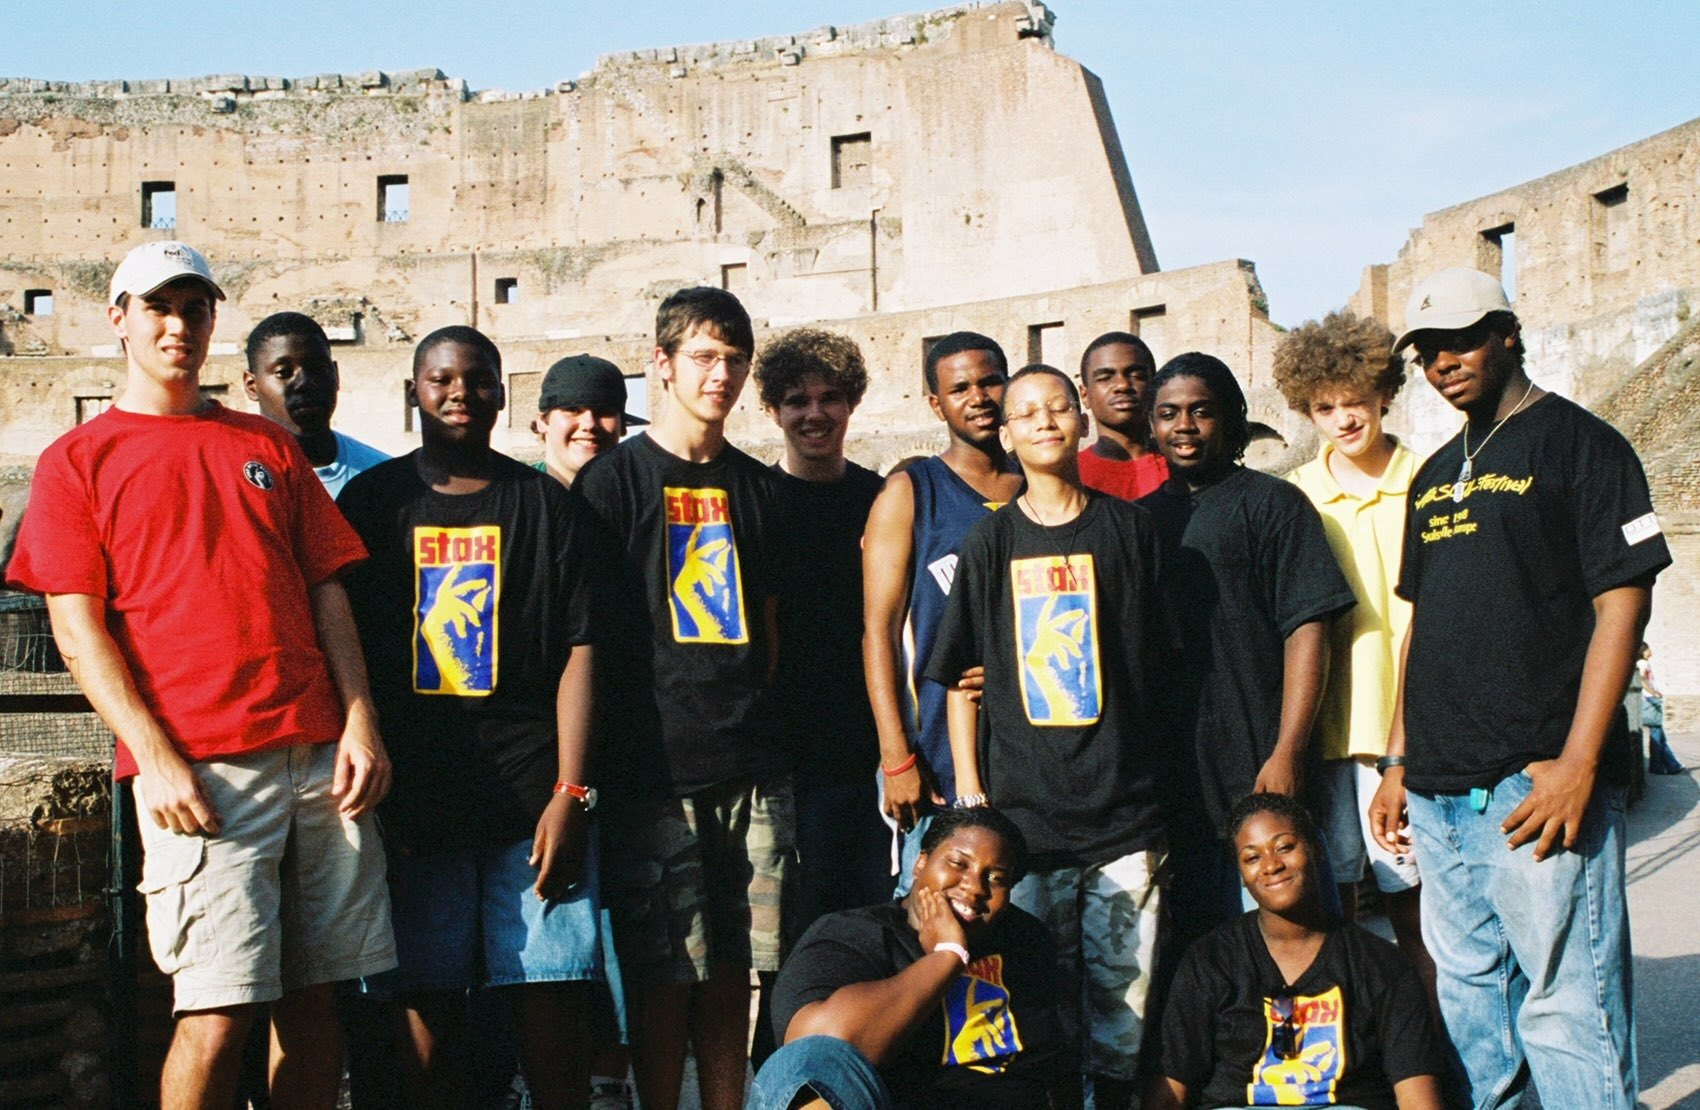 Stax Music Academy Kids at Colosseum in Rome.